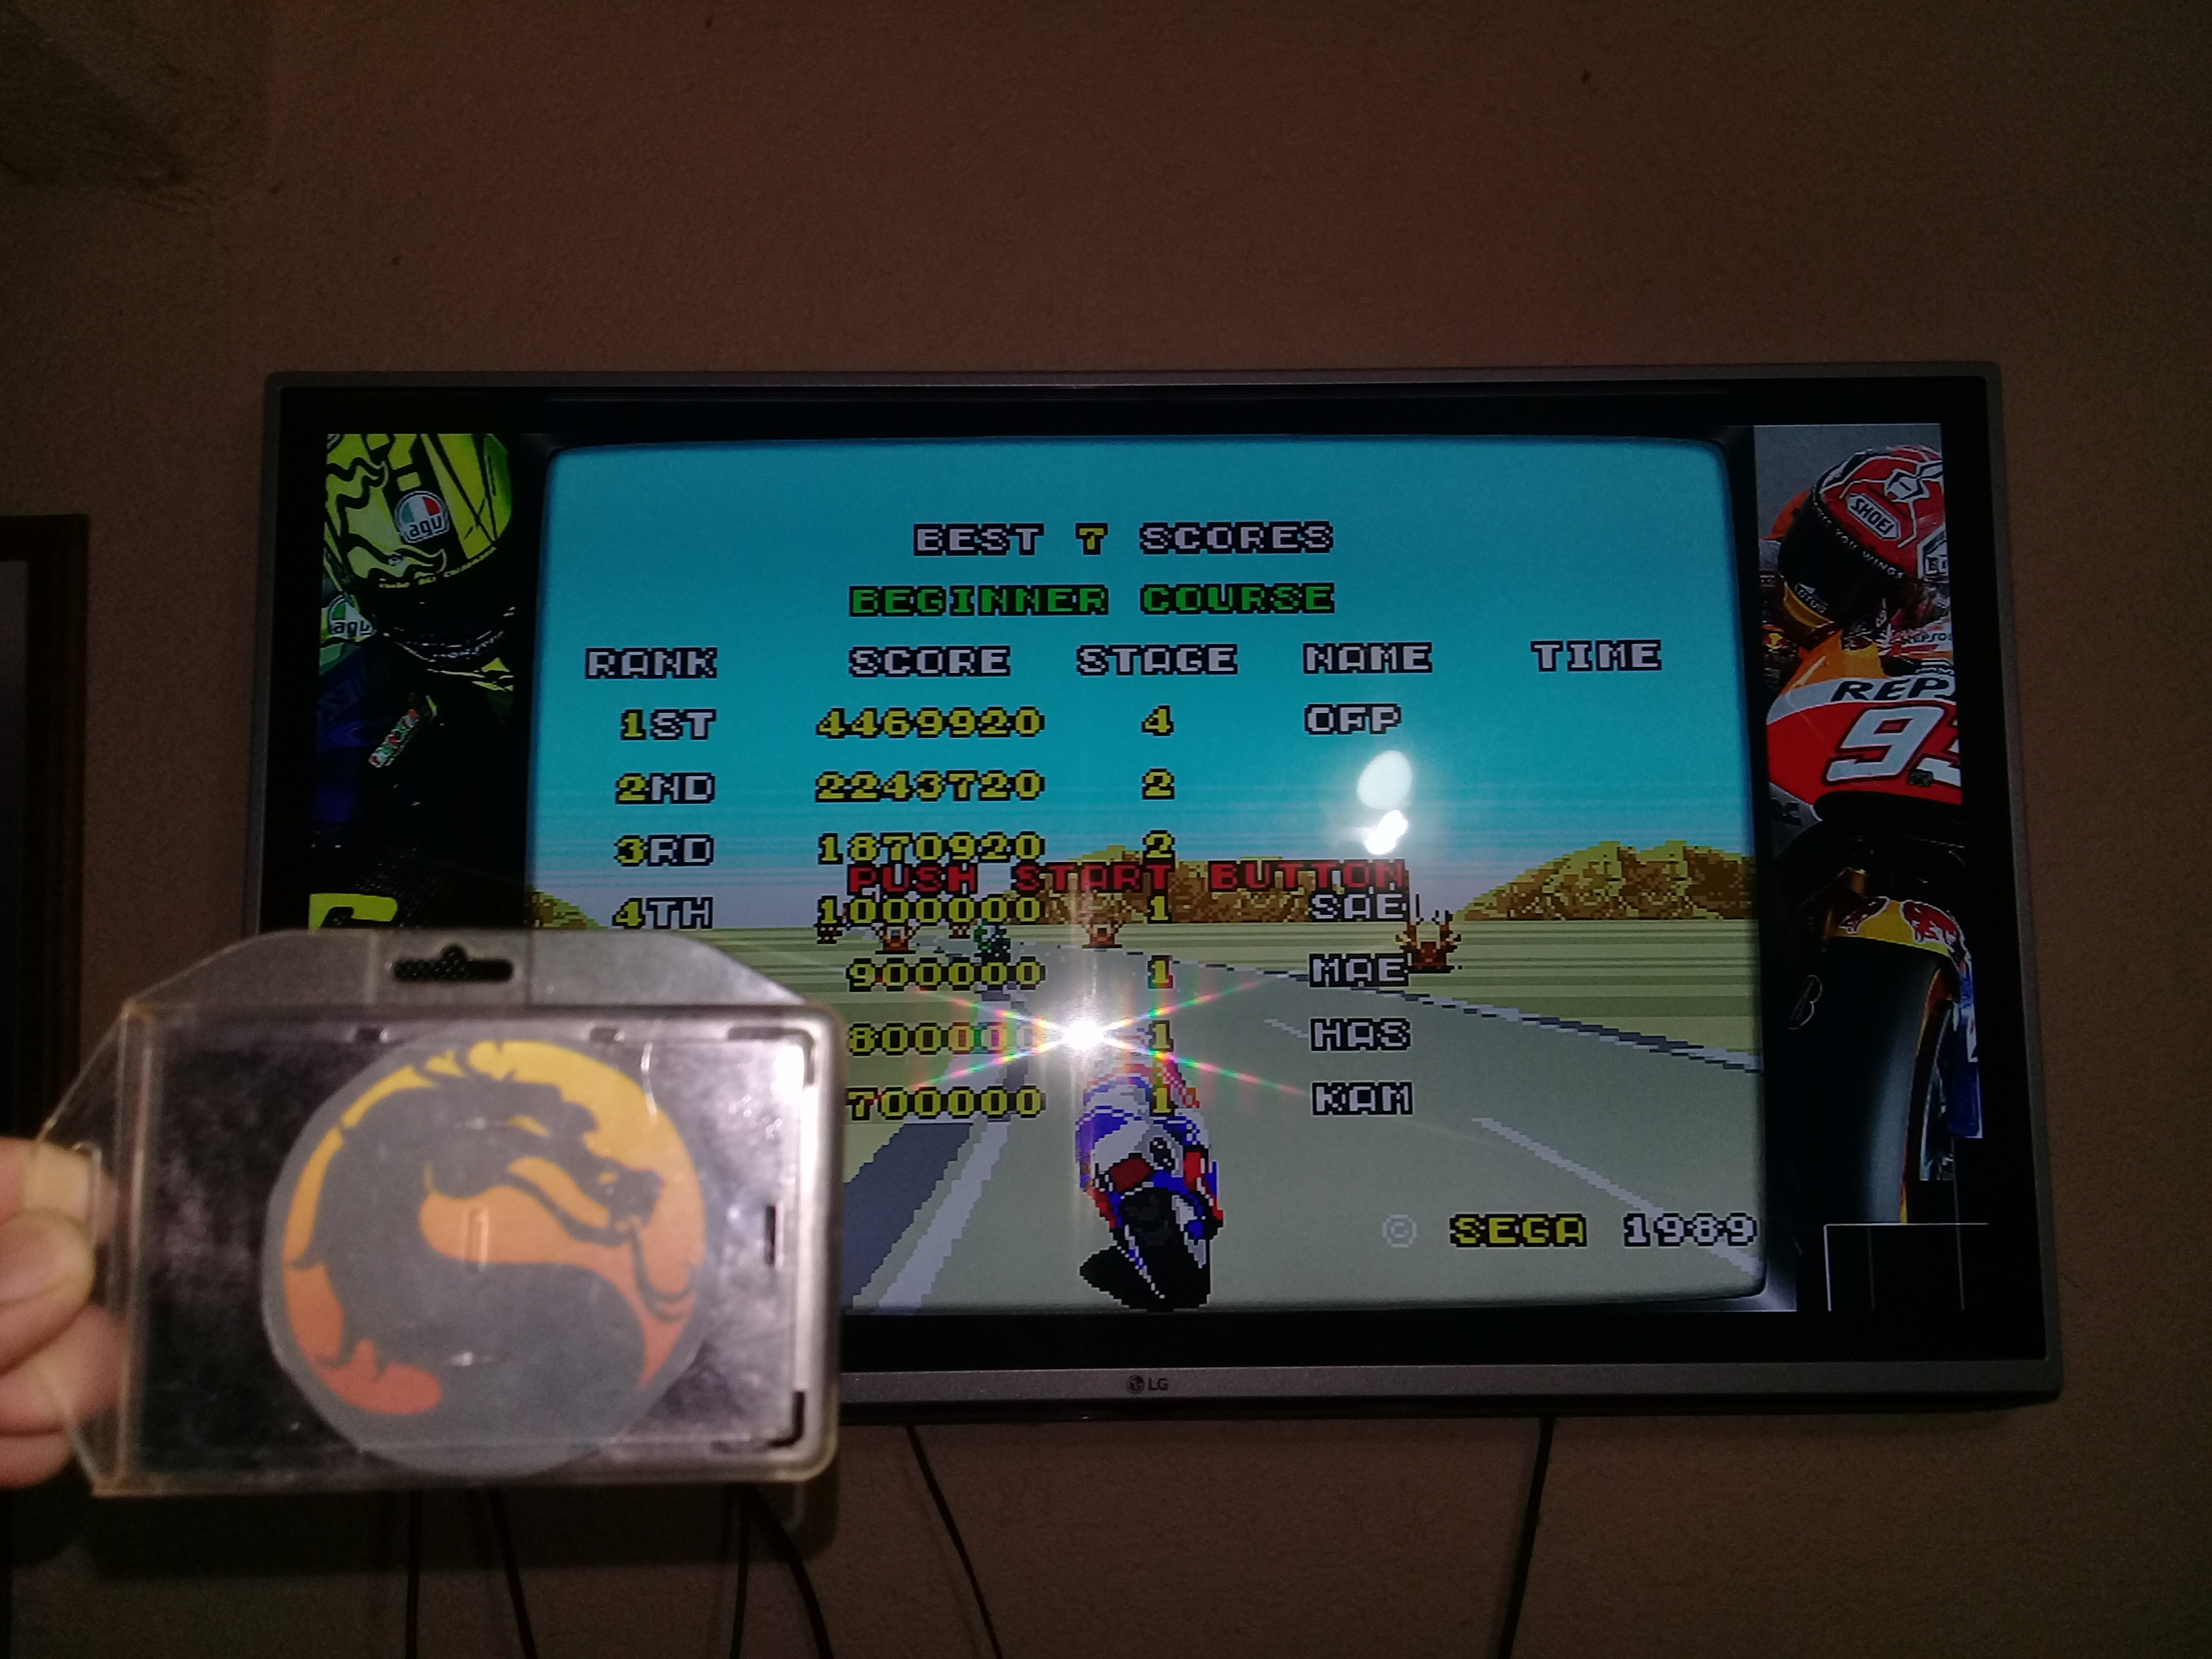 omargeddon: Super Hang-On [Beginner Course] (Sega Genesis / MegaDrive Emulated) 4,469,920 points on 2020-07-03 22:45:04